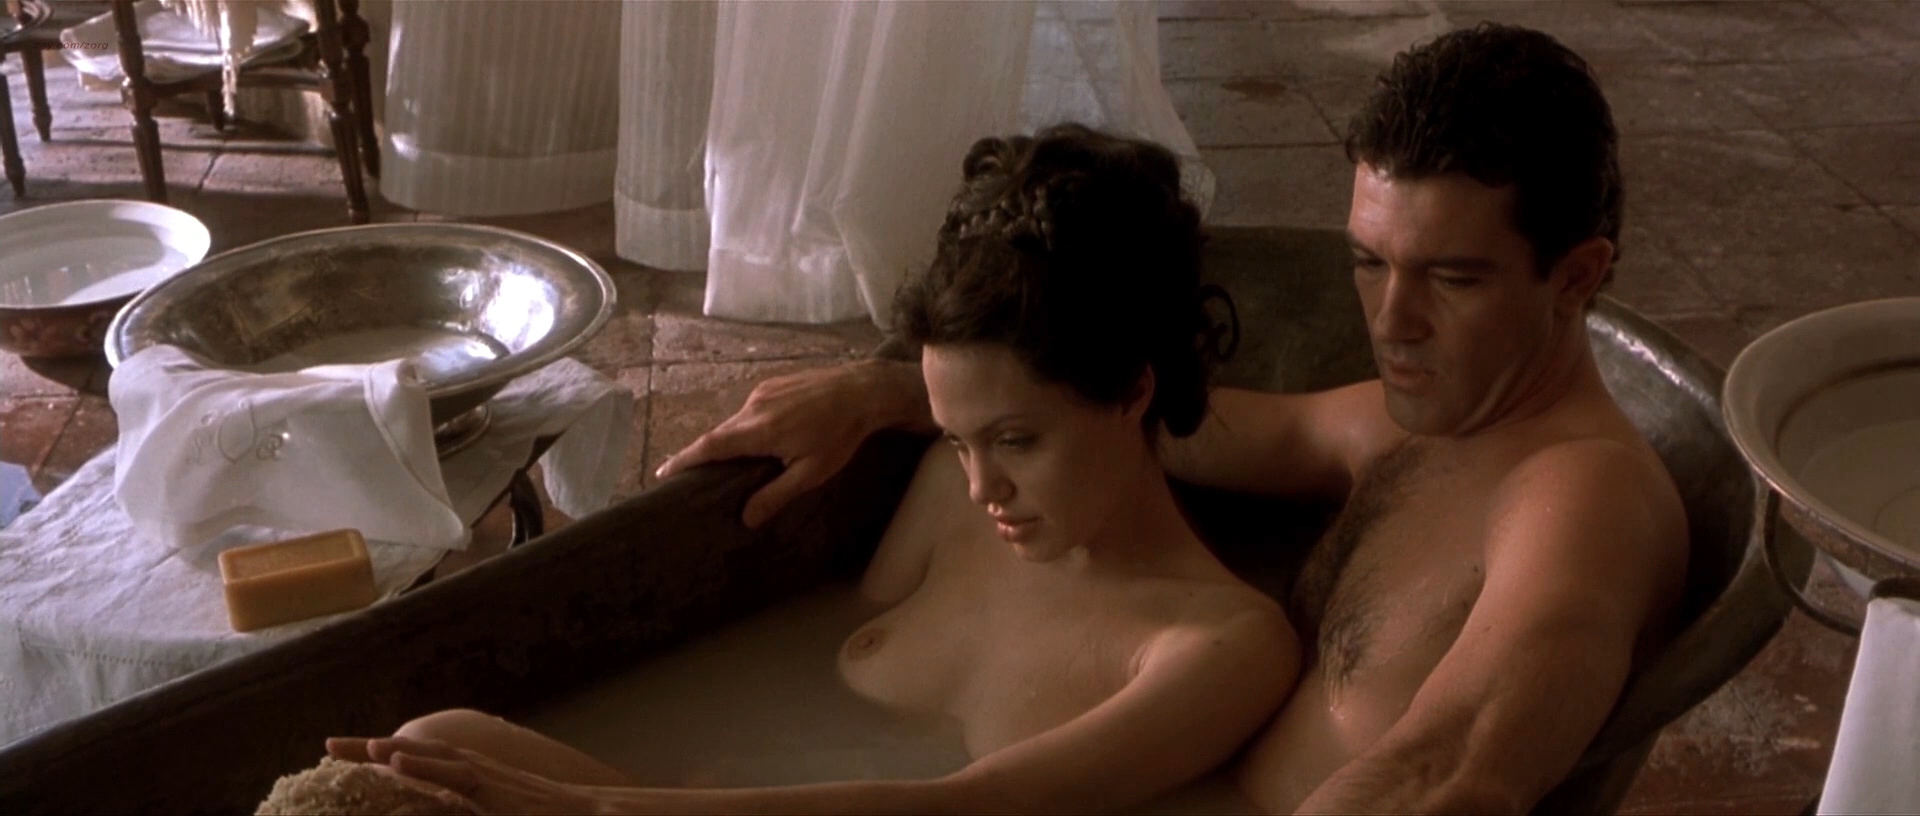 Angelina Jolie Nude And Hot Sex In - Original Sin 2001 -3338